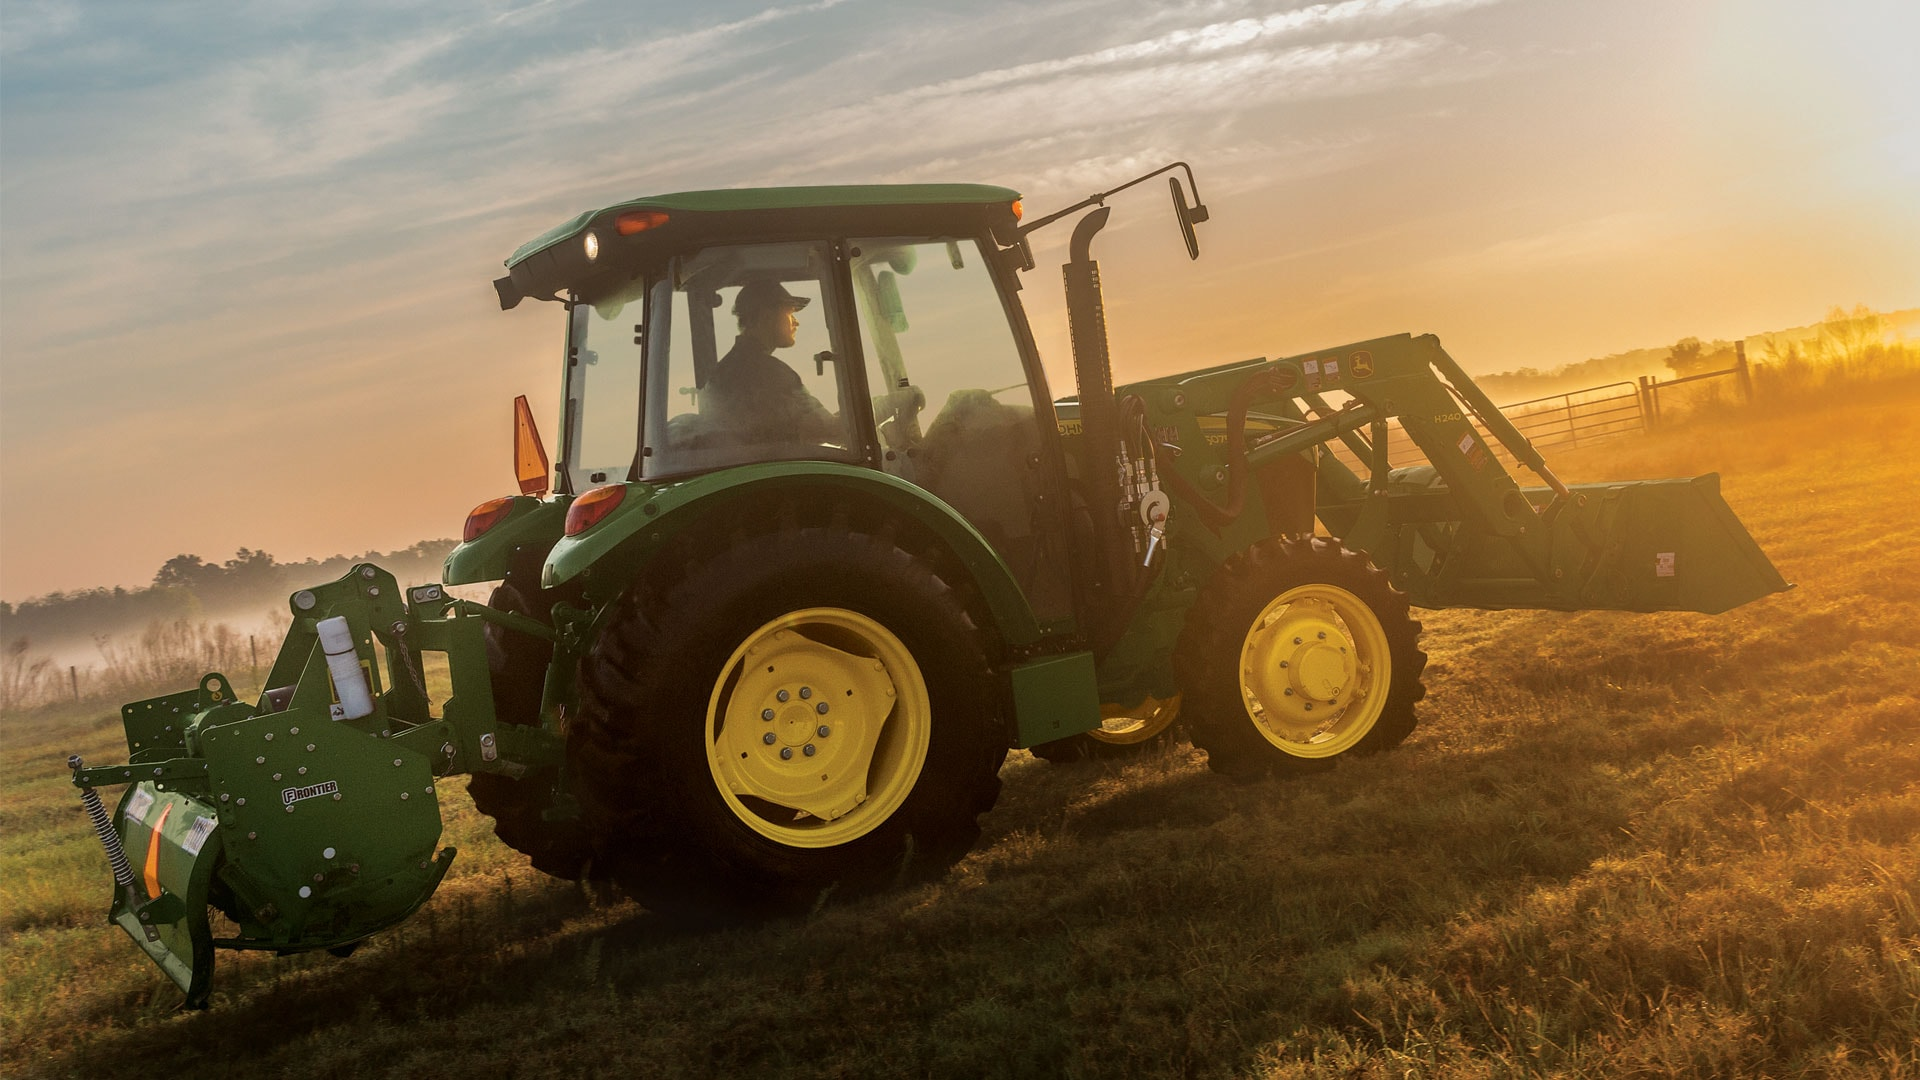 View 0% for 60 Months 5E Series (45-75 hp) Tractors offer